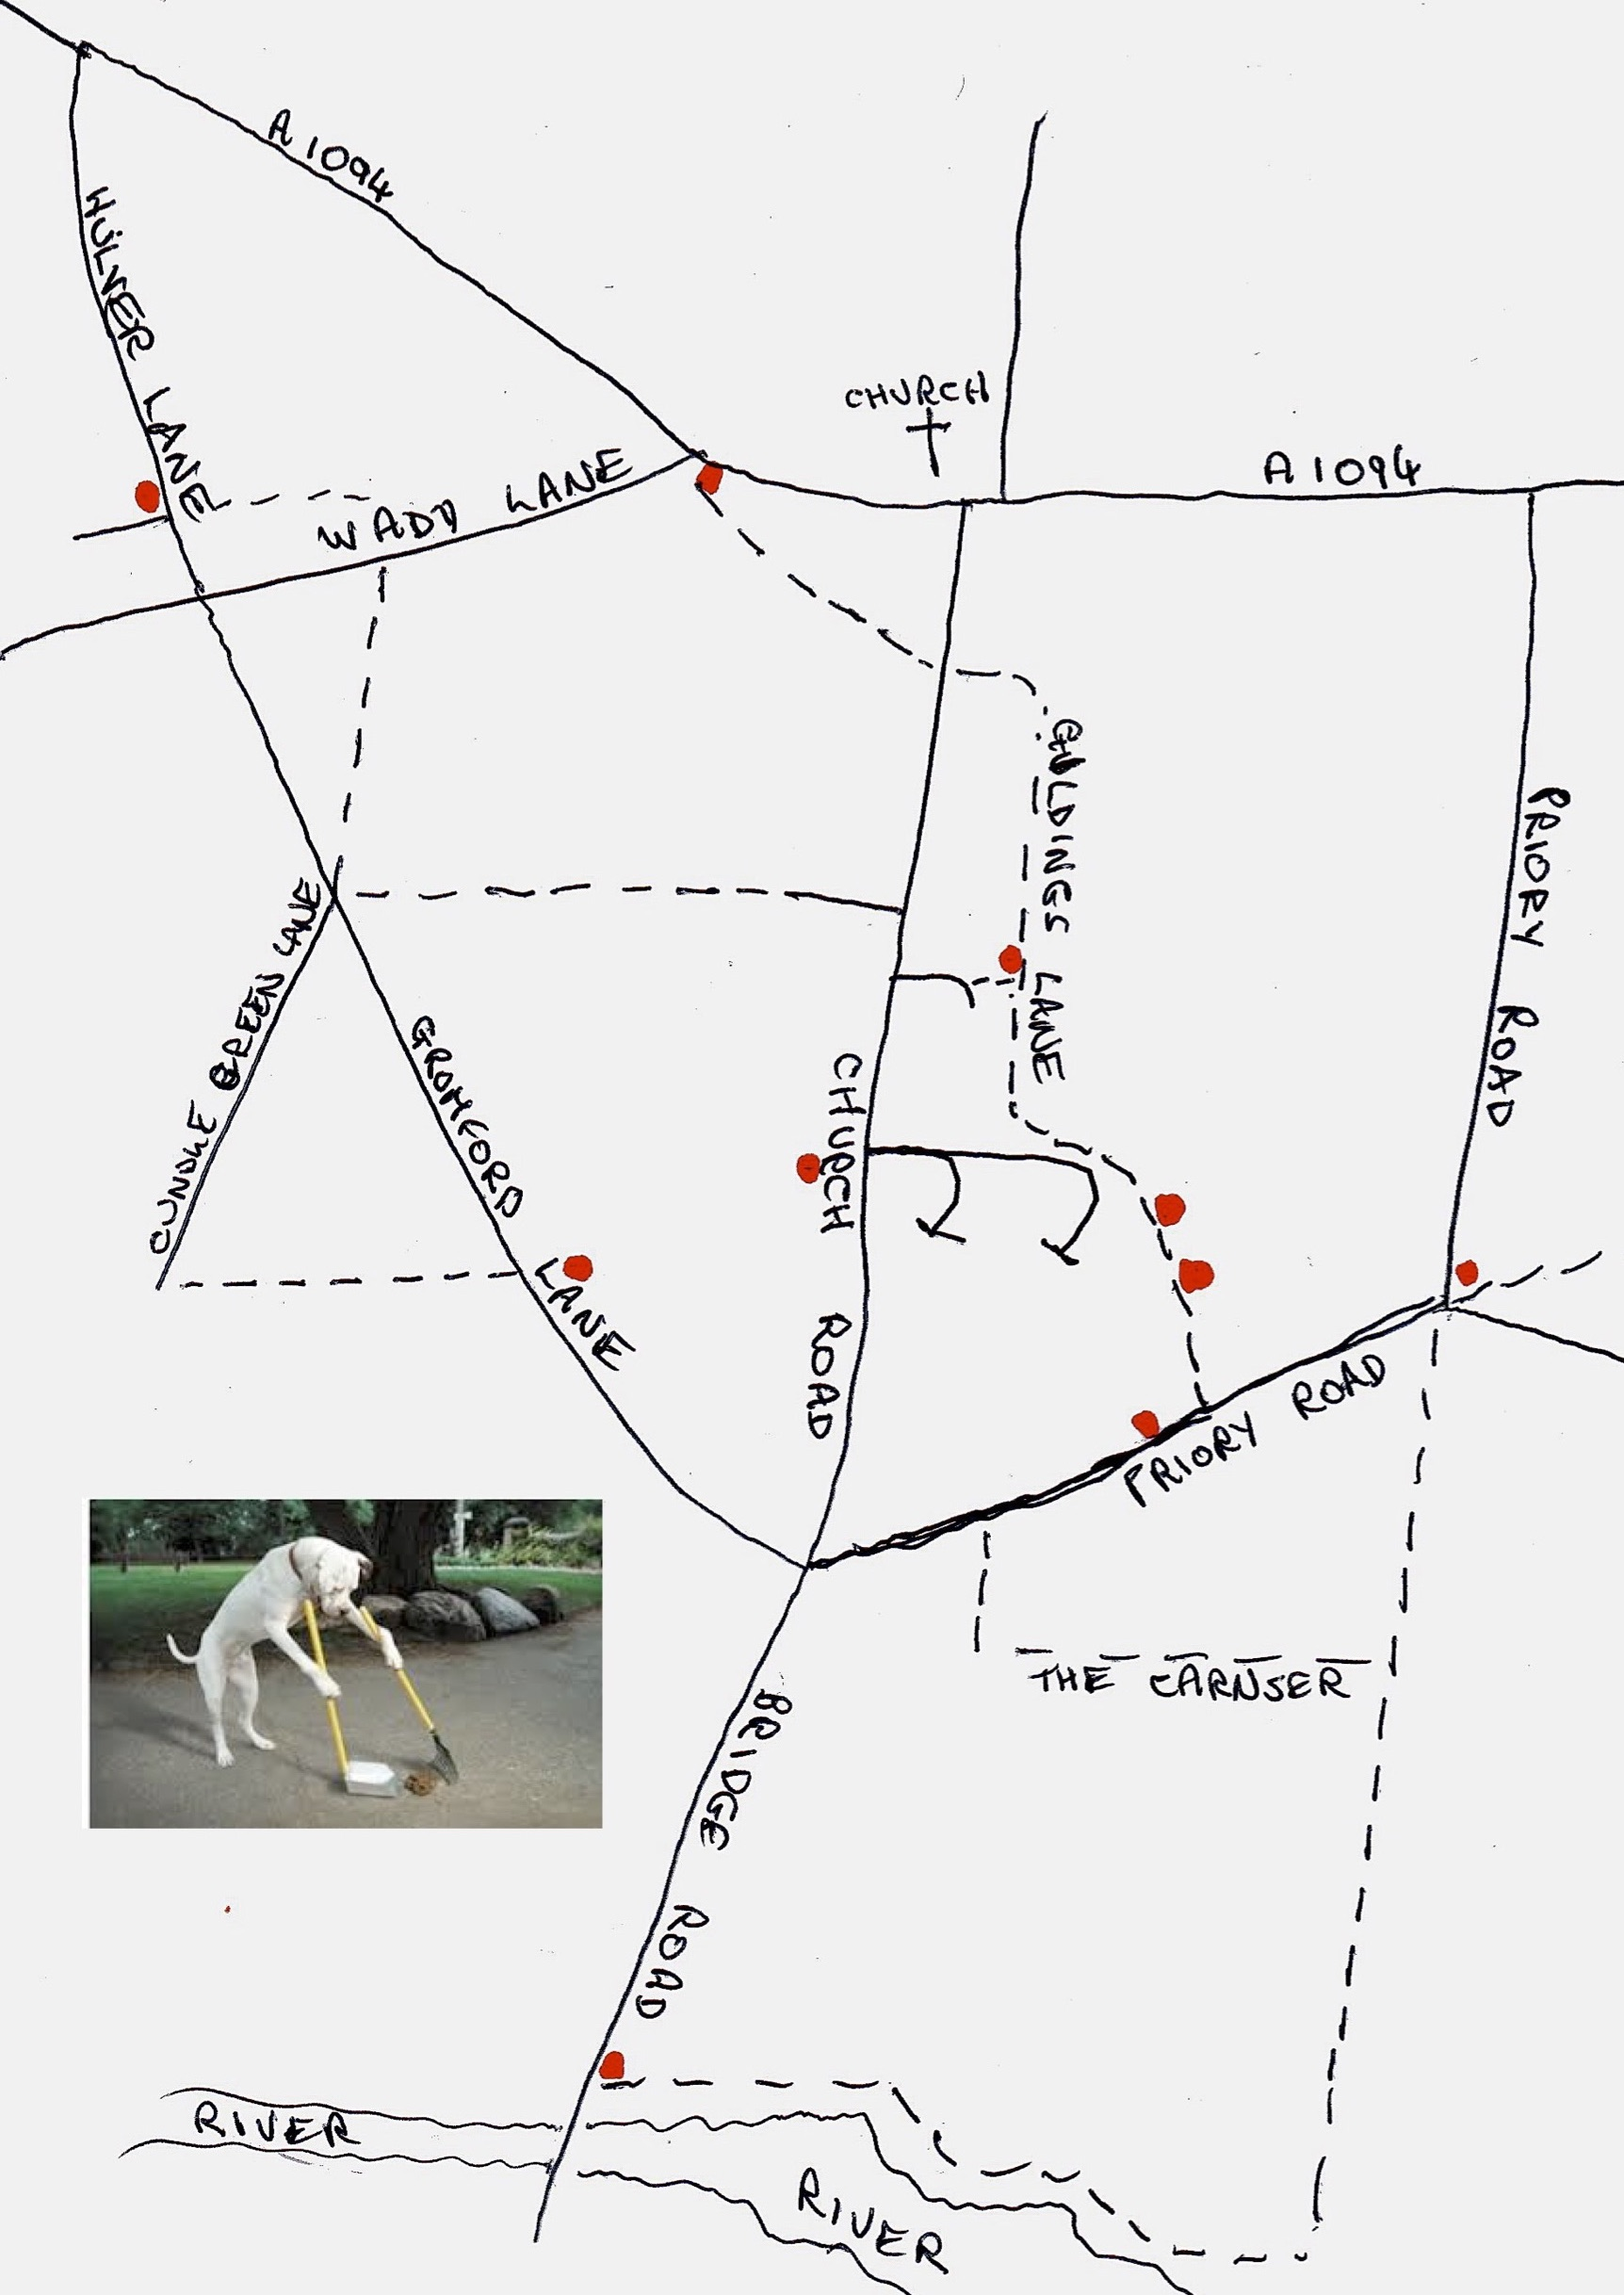 map showing locations of dog-bins around Snape